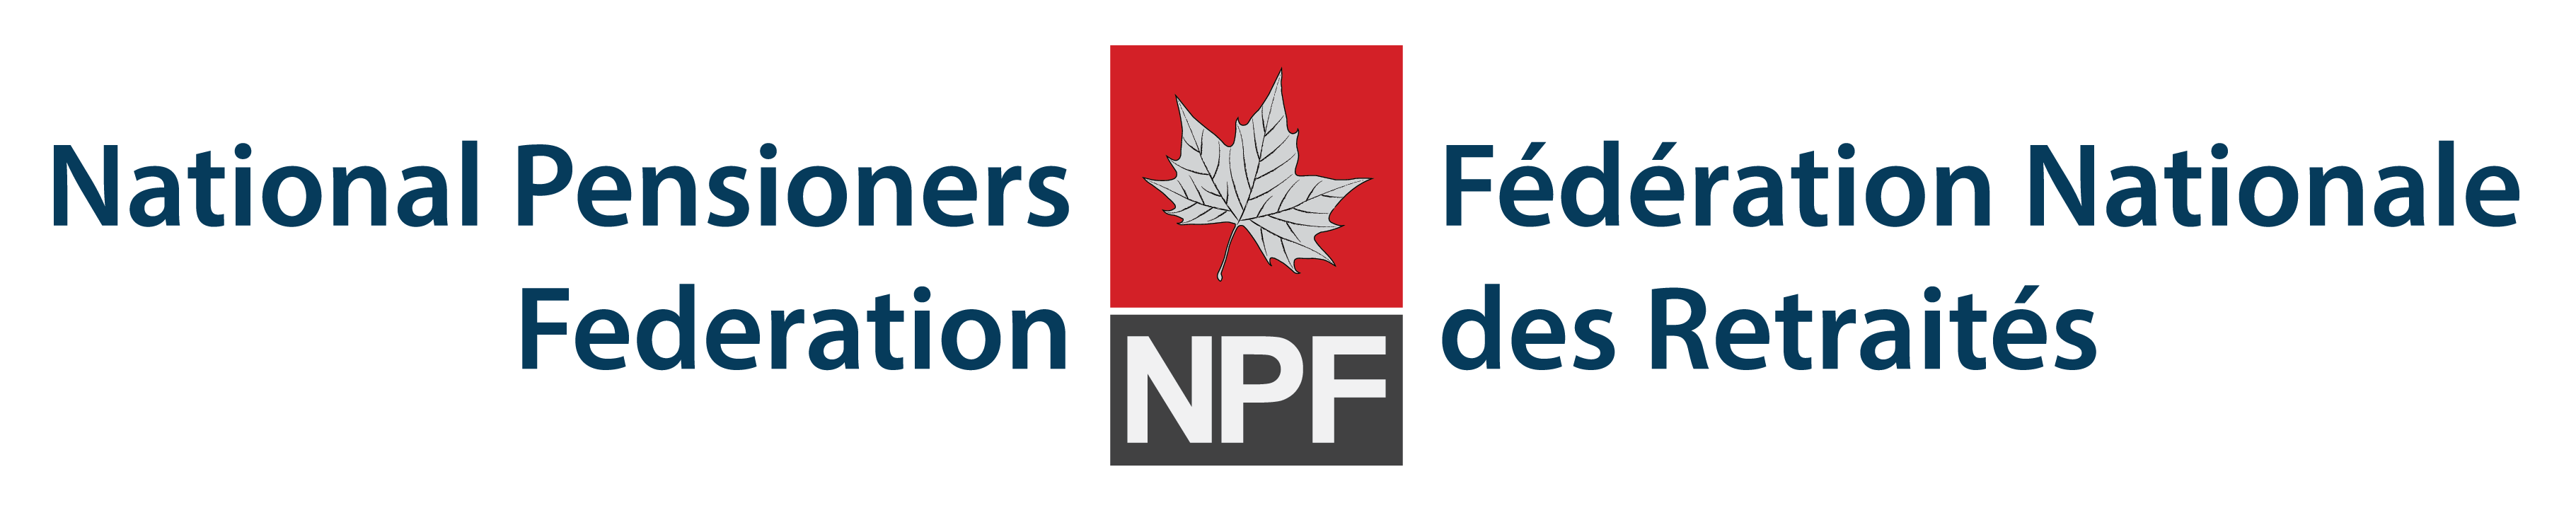 National Pensioners Federation logo